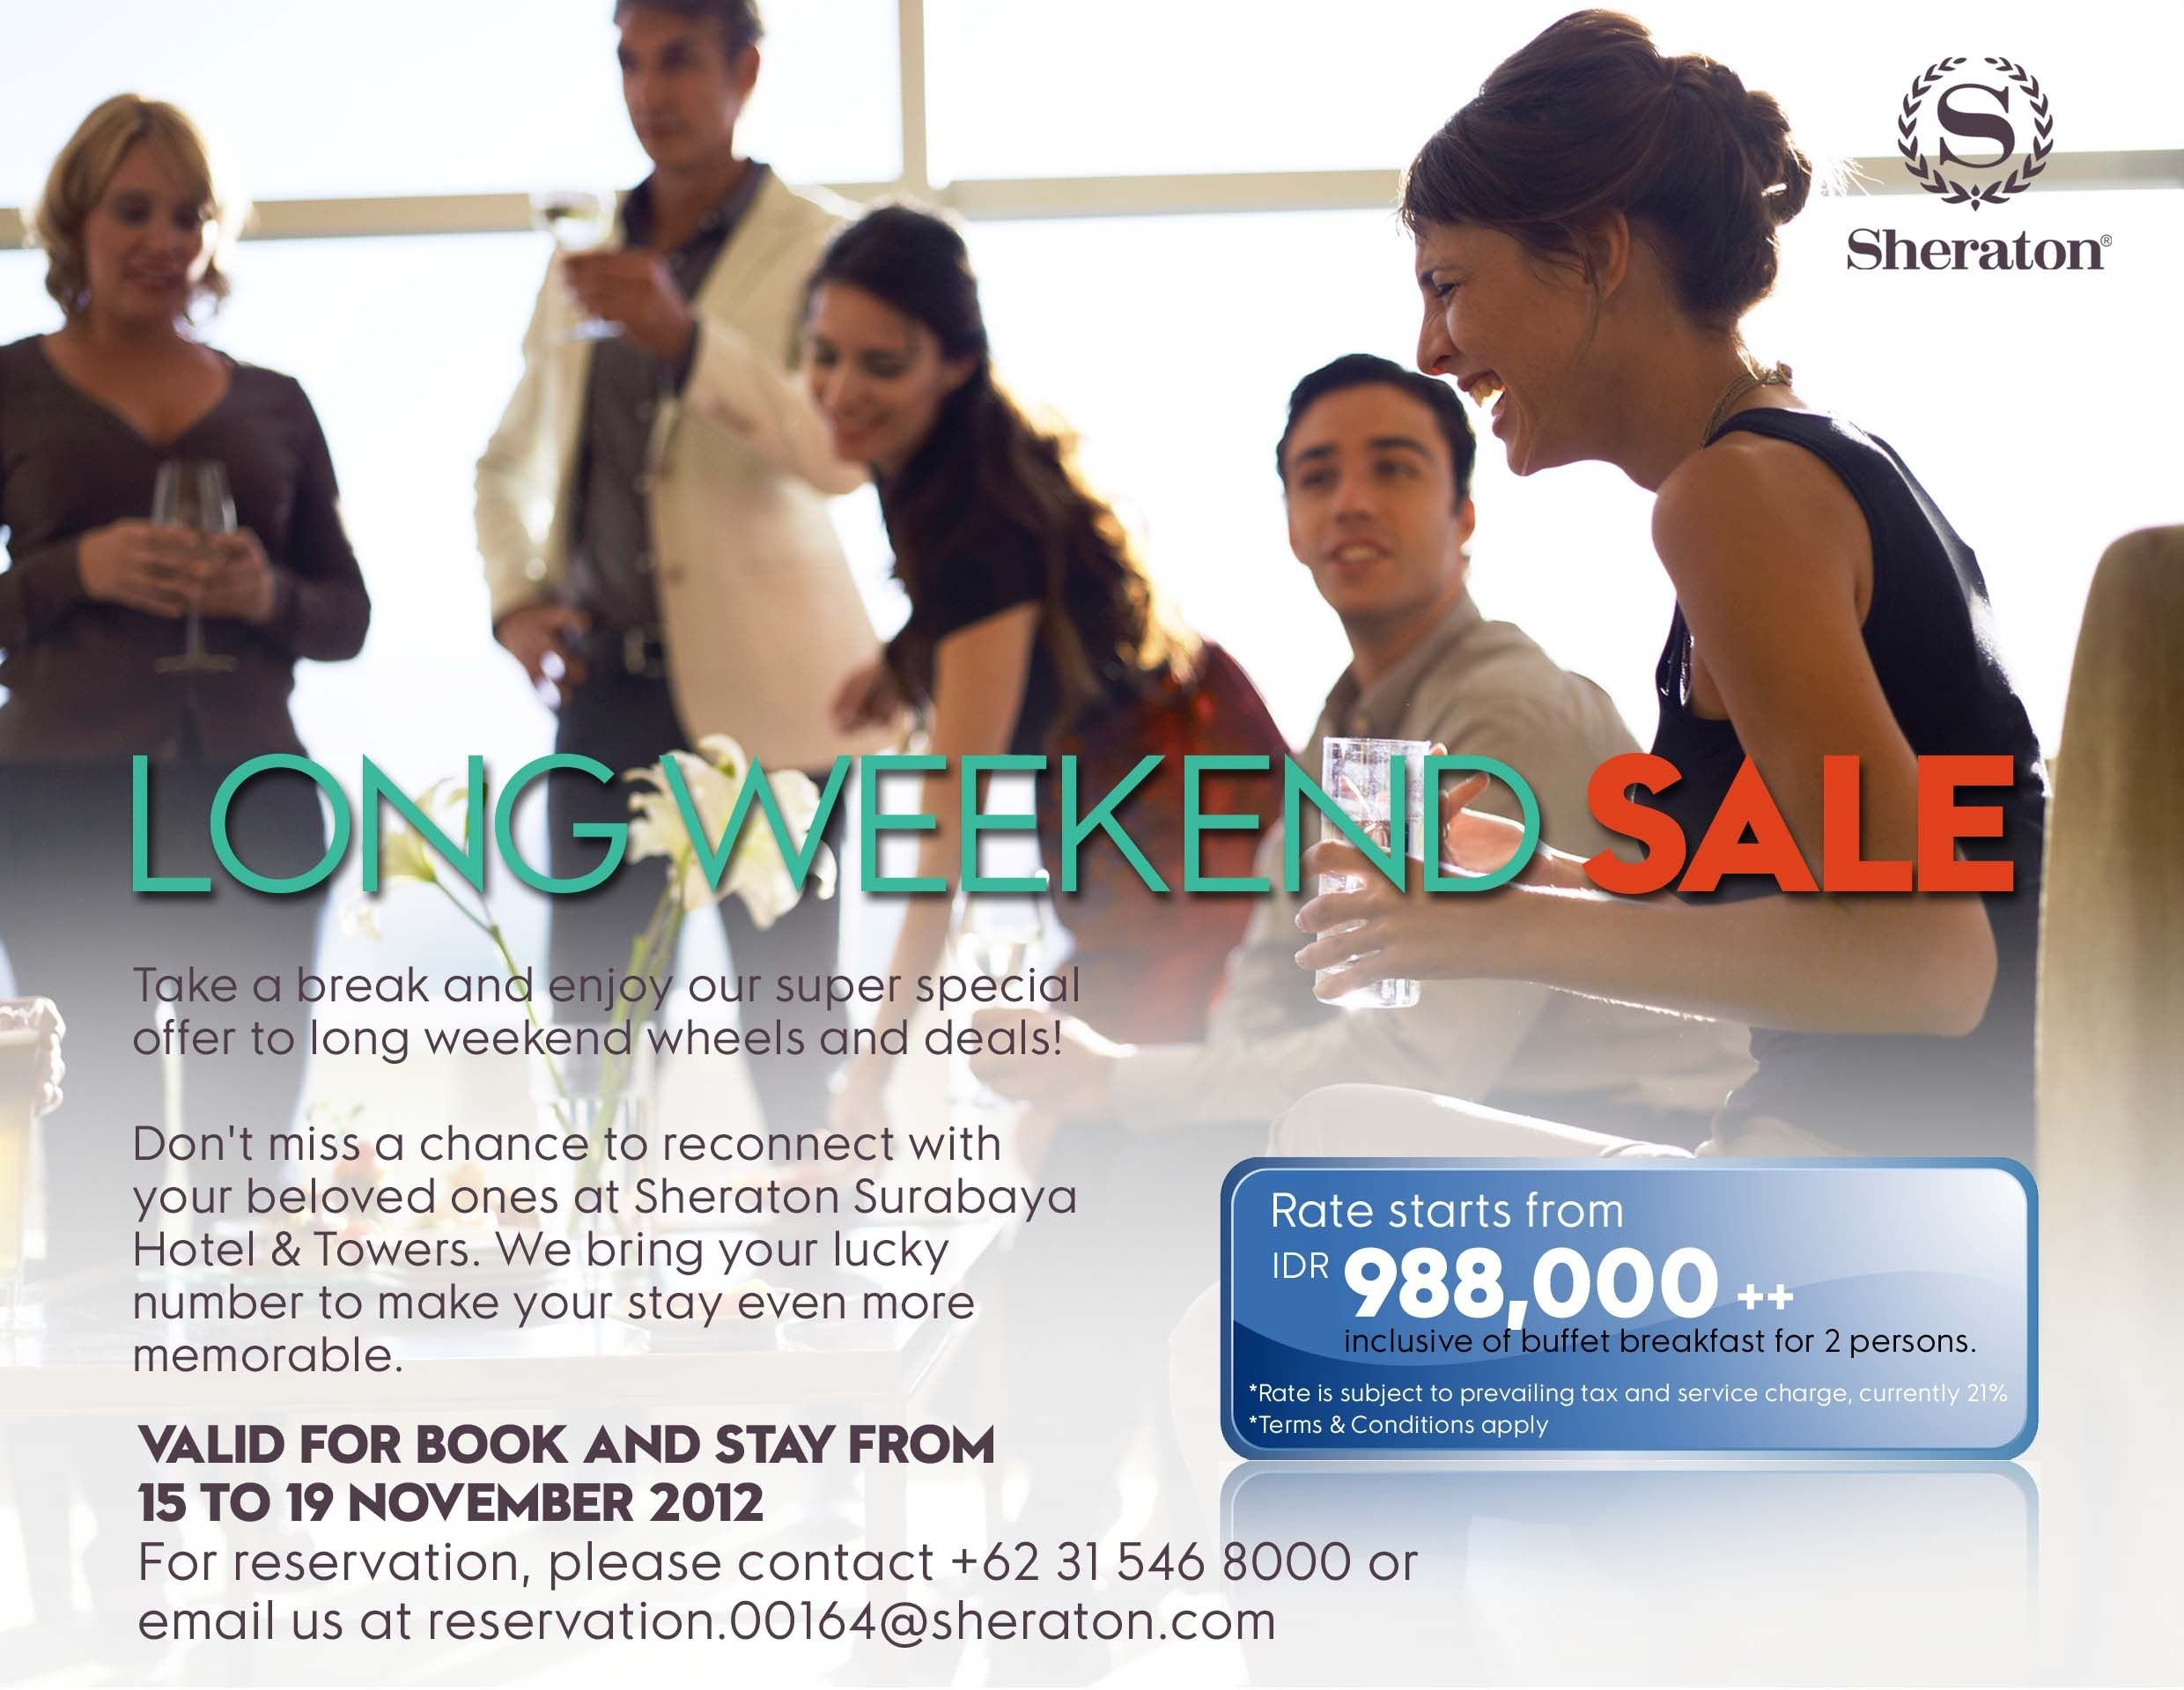 Take a break and enjoy our super special offer to long weekend